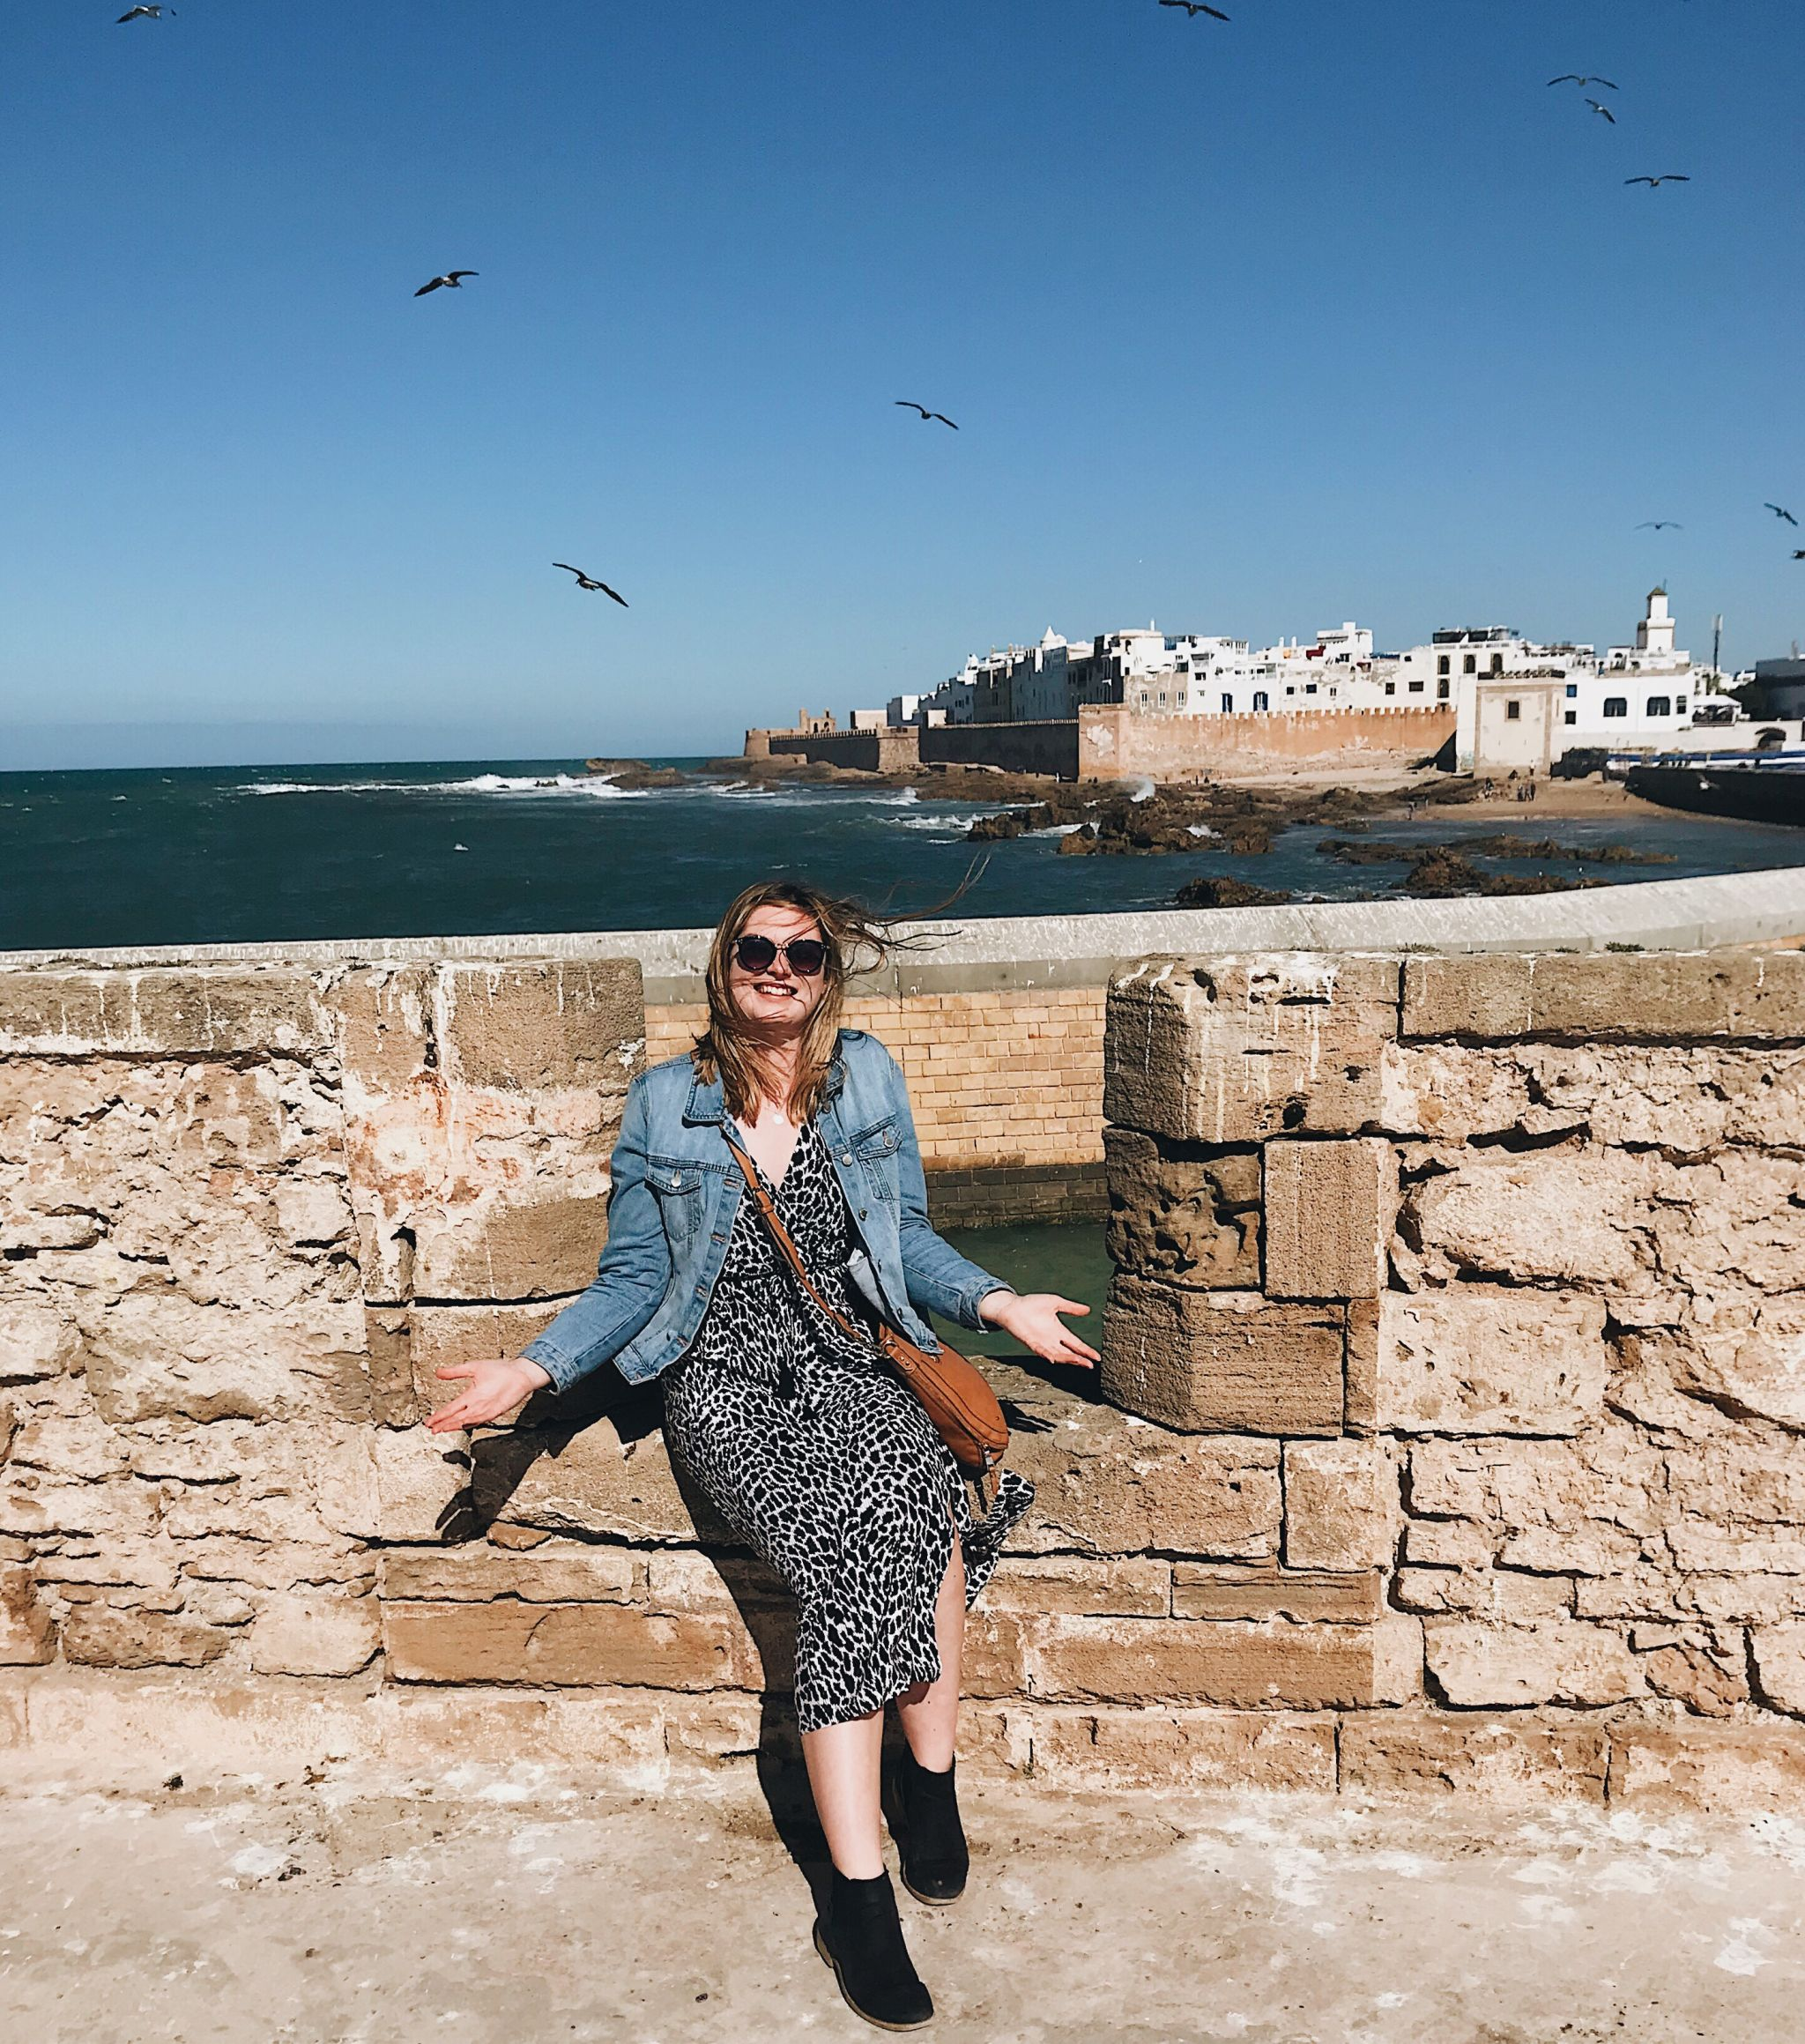 one week in morocco itinerary: Essaouira